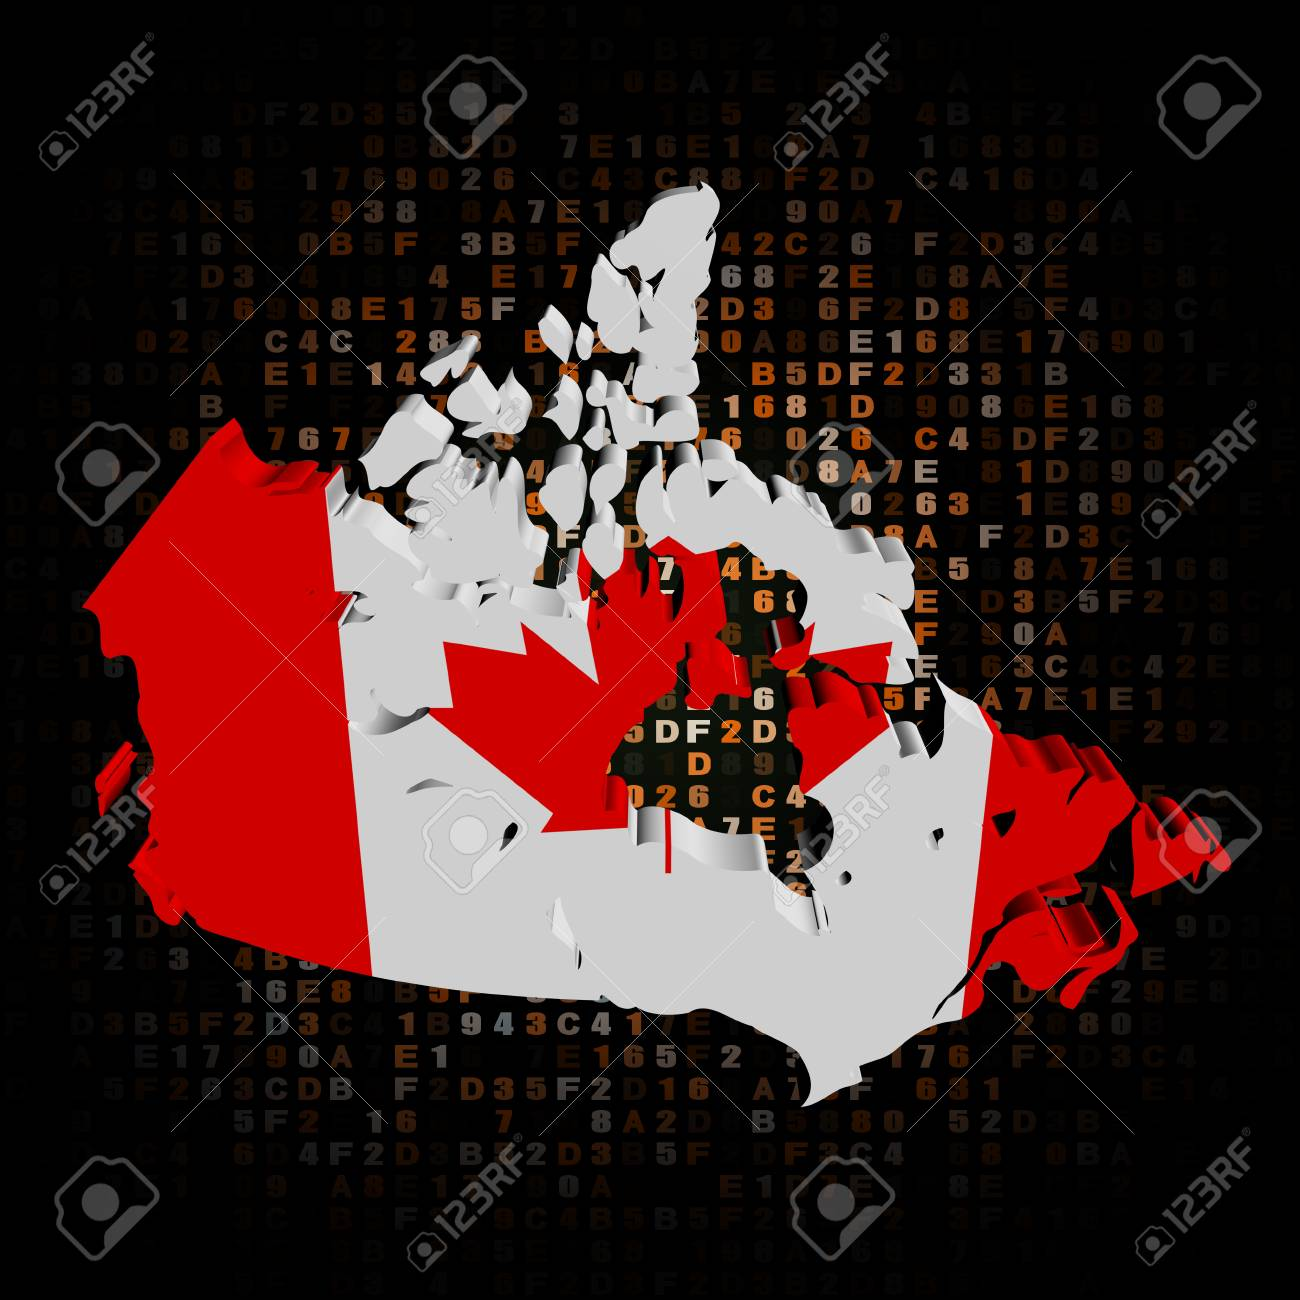 Canada Map Flag.Canada Map Flag On Hex Code Illustration Stock Photo Picture And